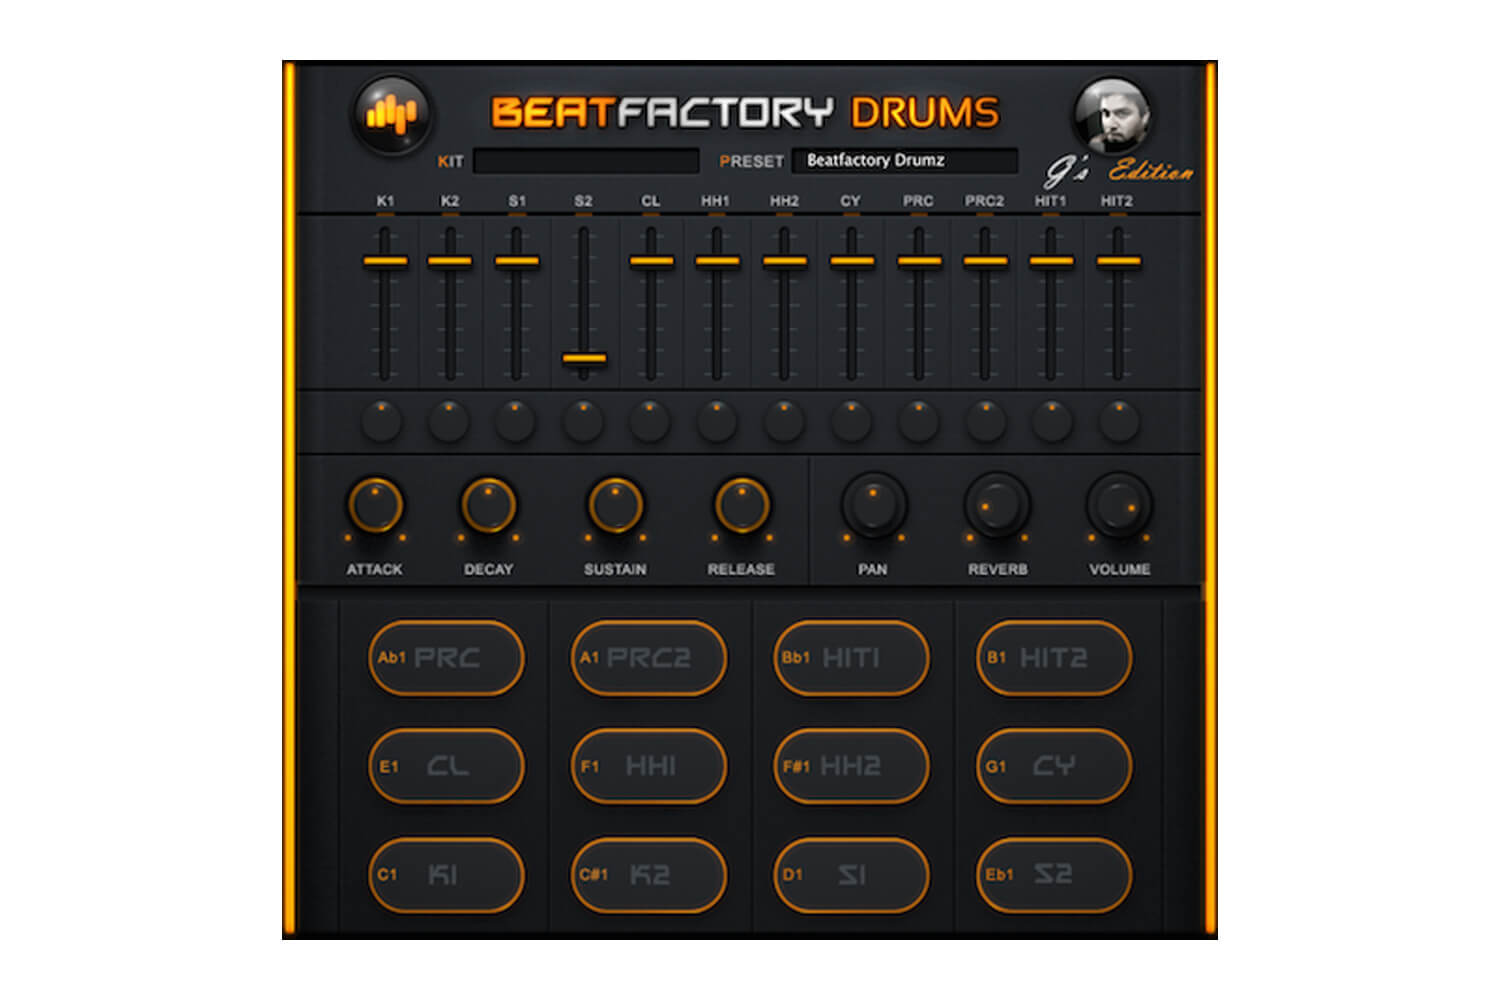 BeatSkillz Beatfactory Drums